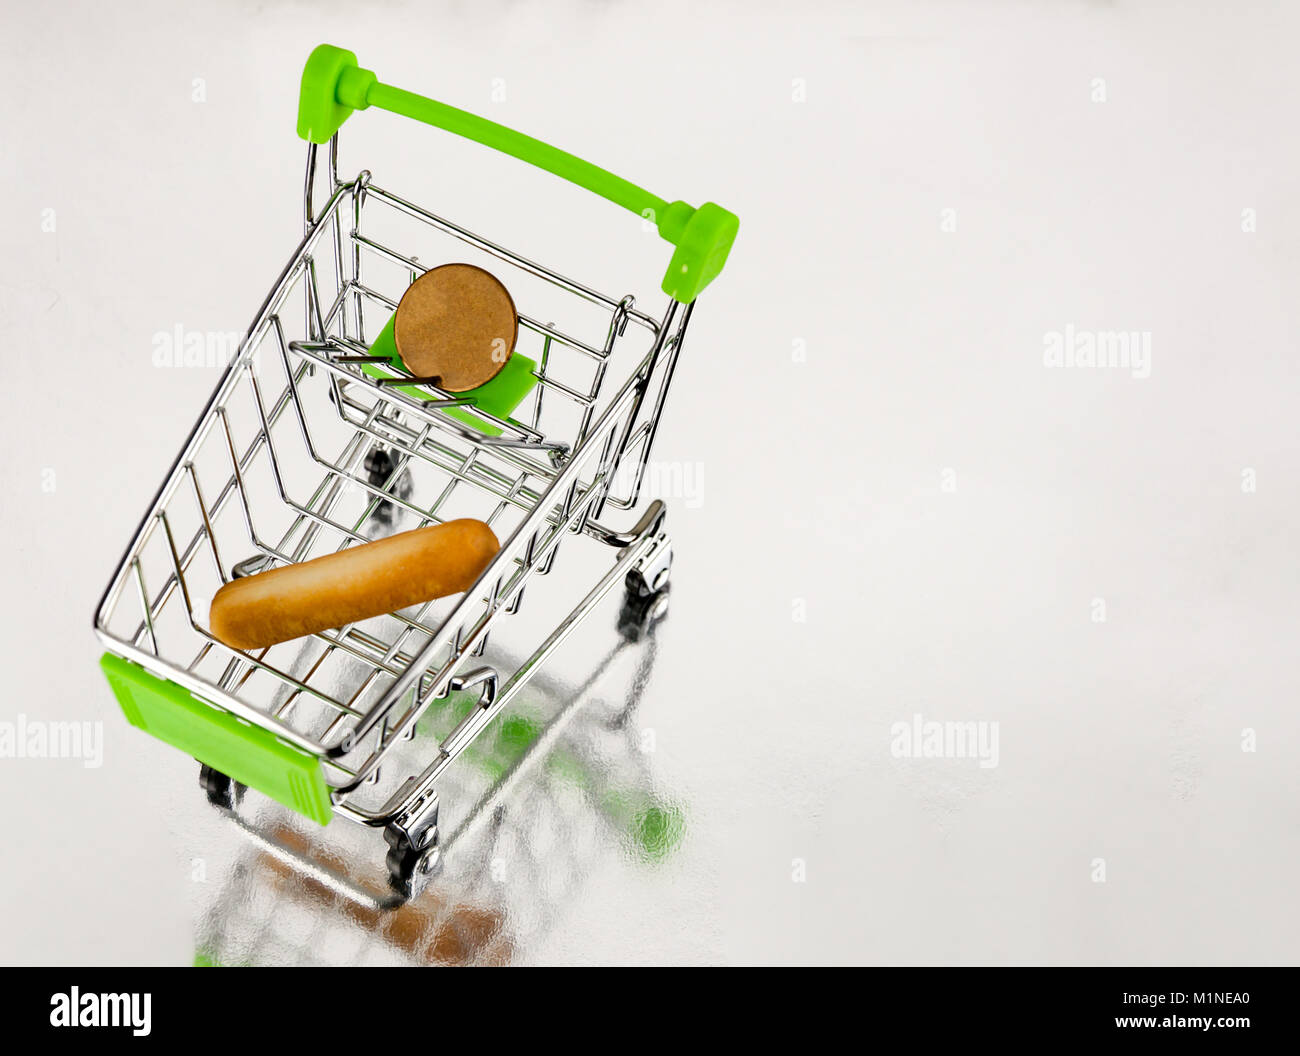 A supermarket trolley with a loaf of bread and a coin - Stock Image